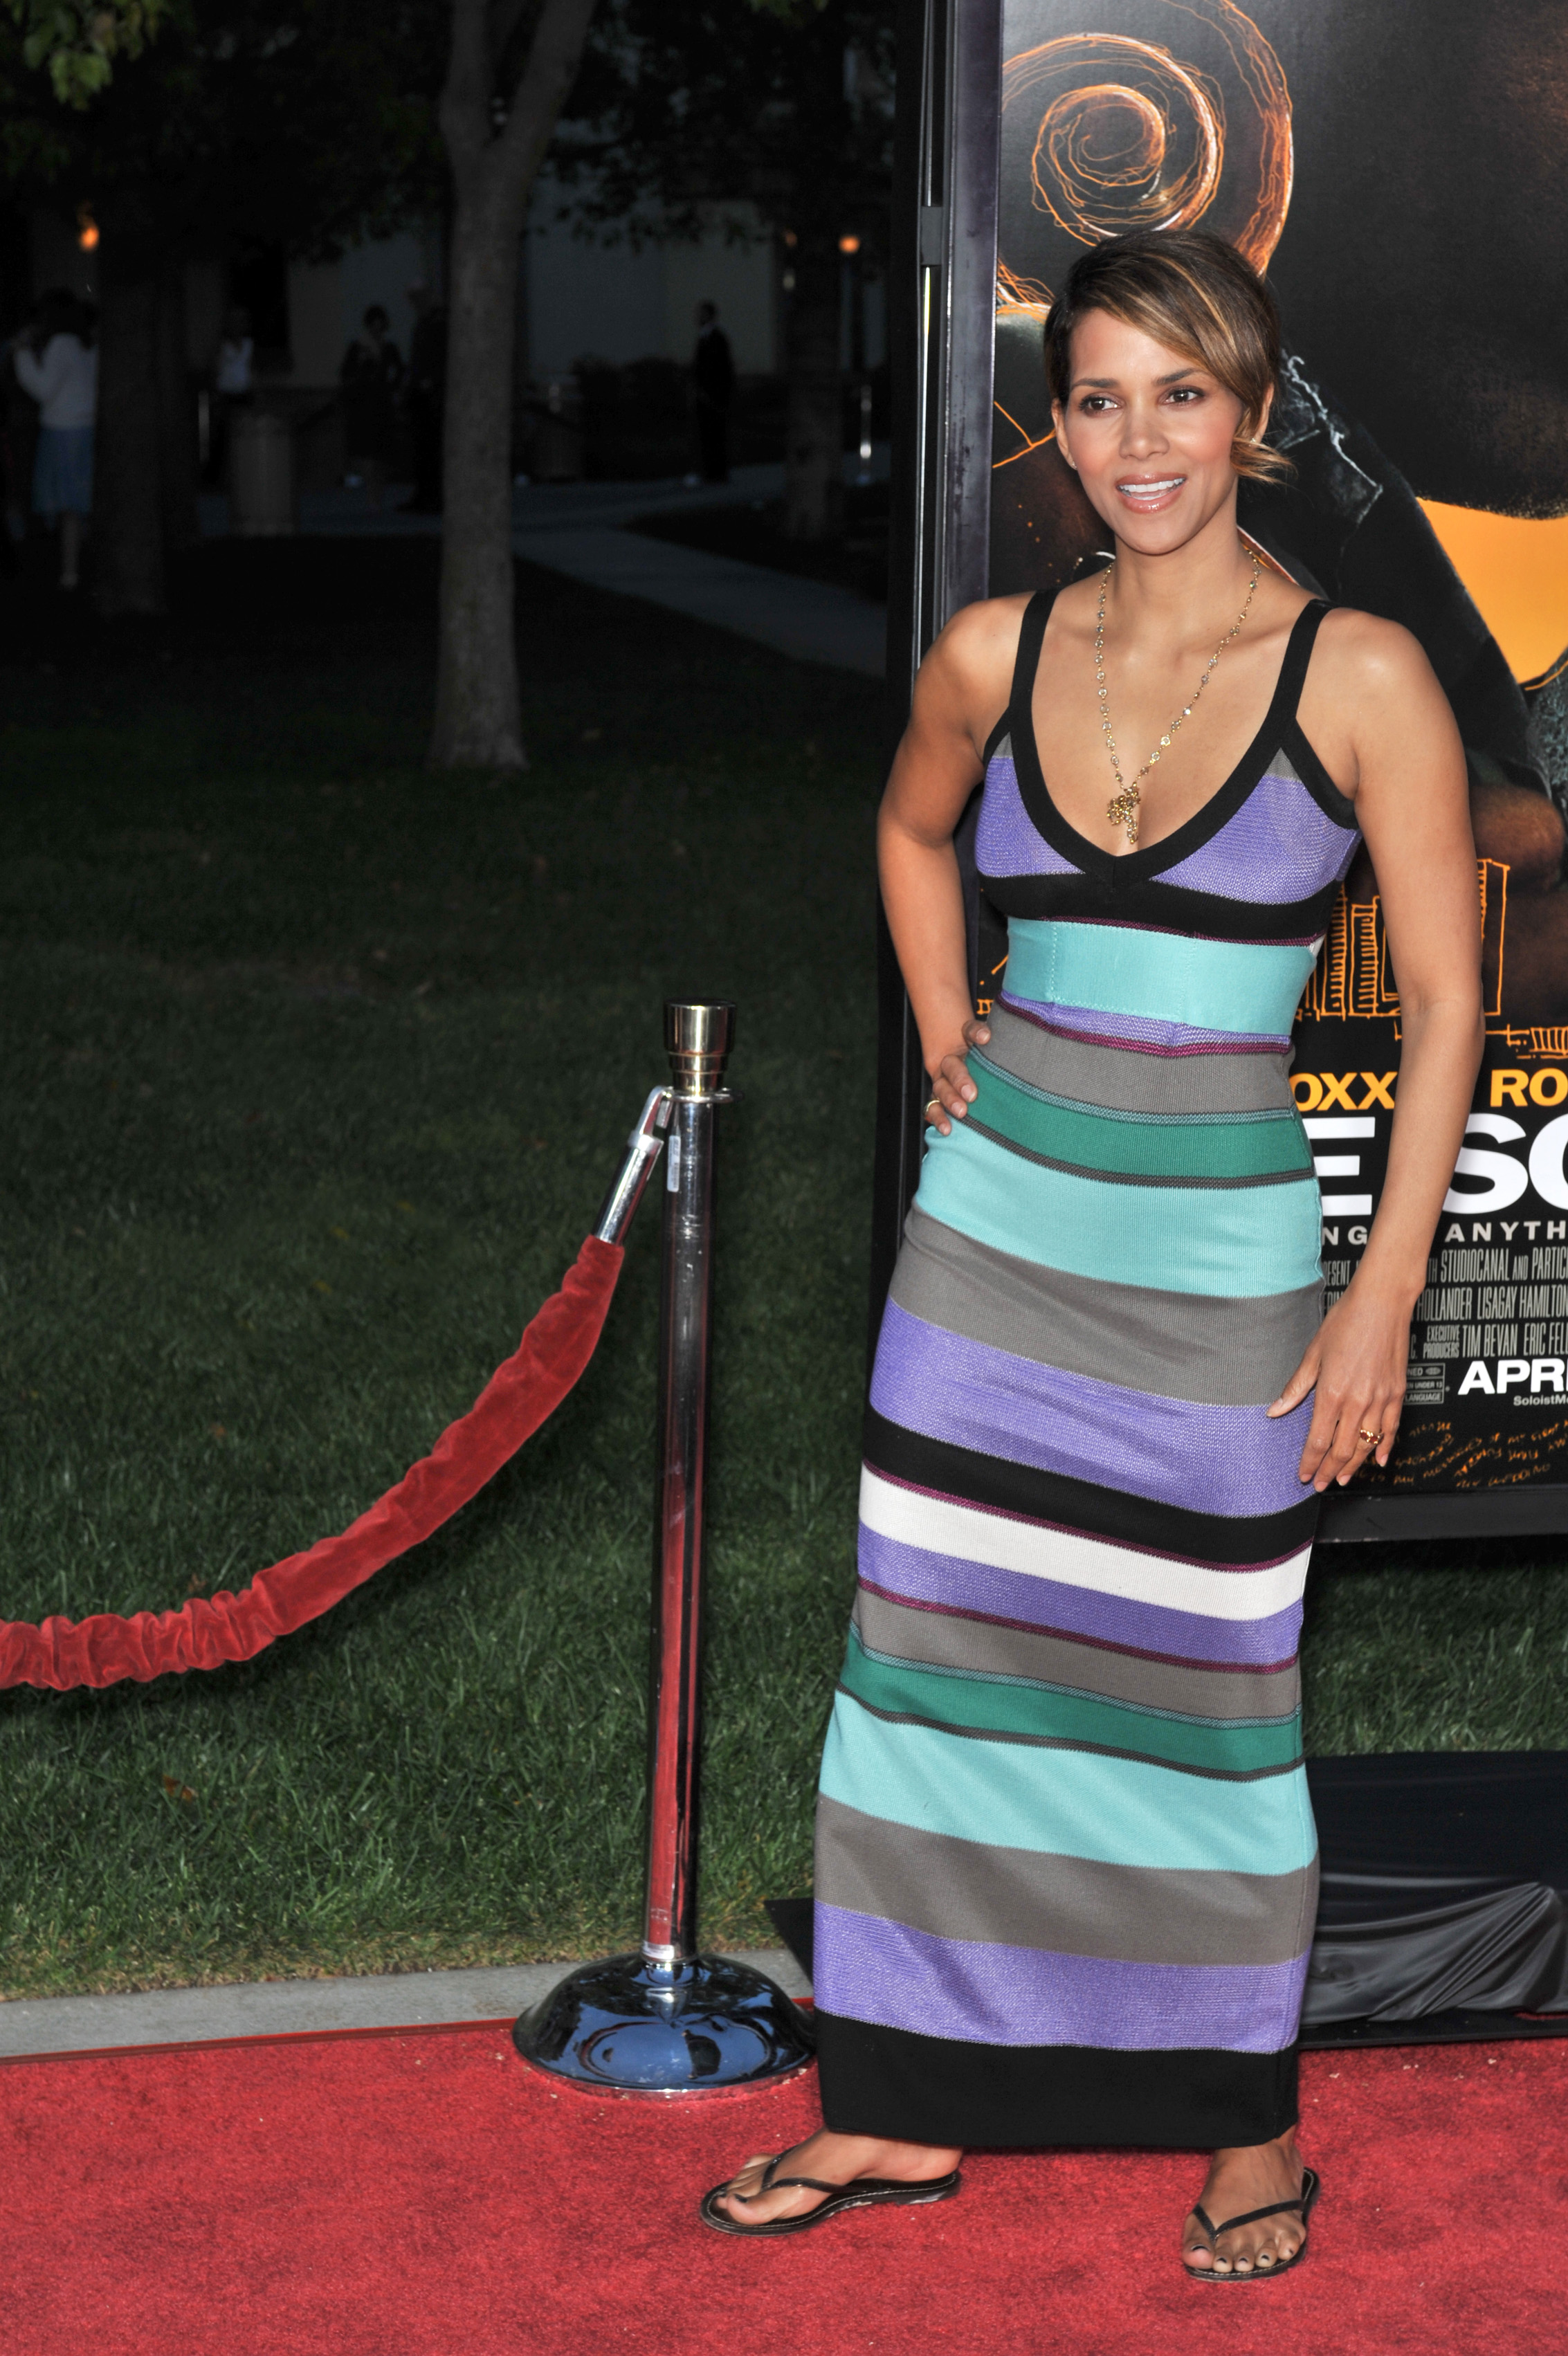 68422_Halle_Berry_The_Soloist_premiere_in_Los_Angeles_40_122_363lo.jpg